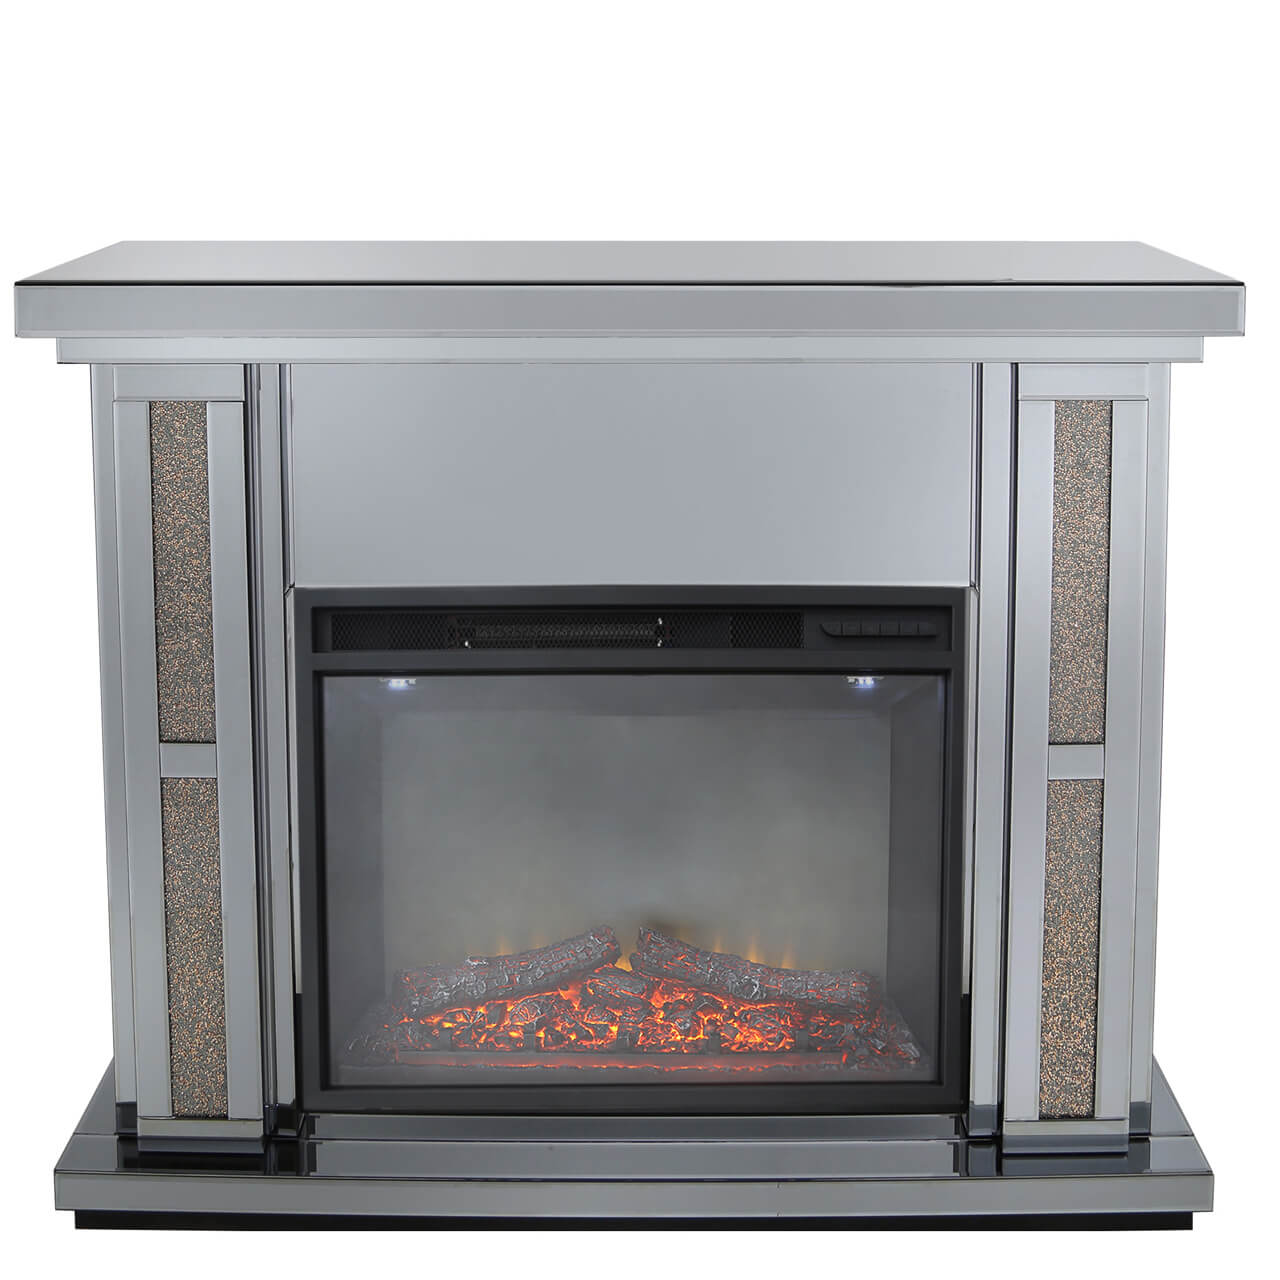 Copper  Milan Mirrored Fire Surrounds